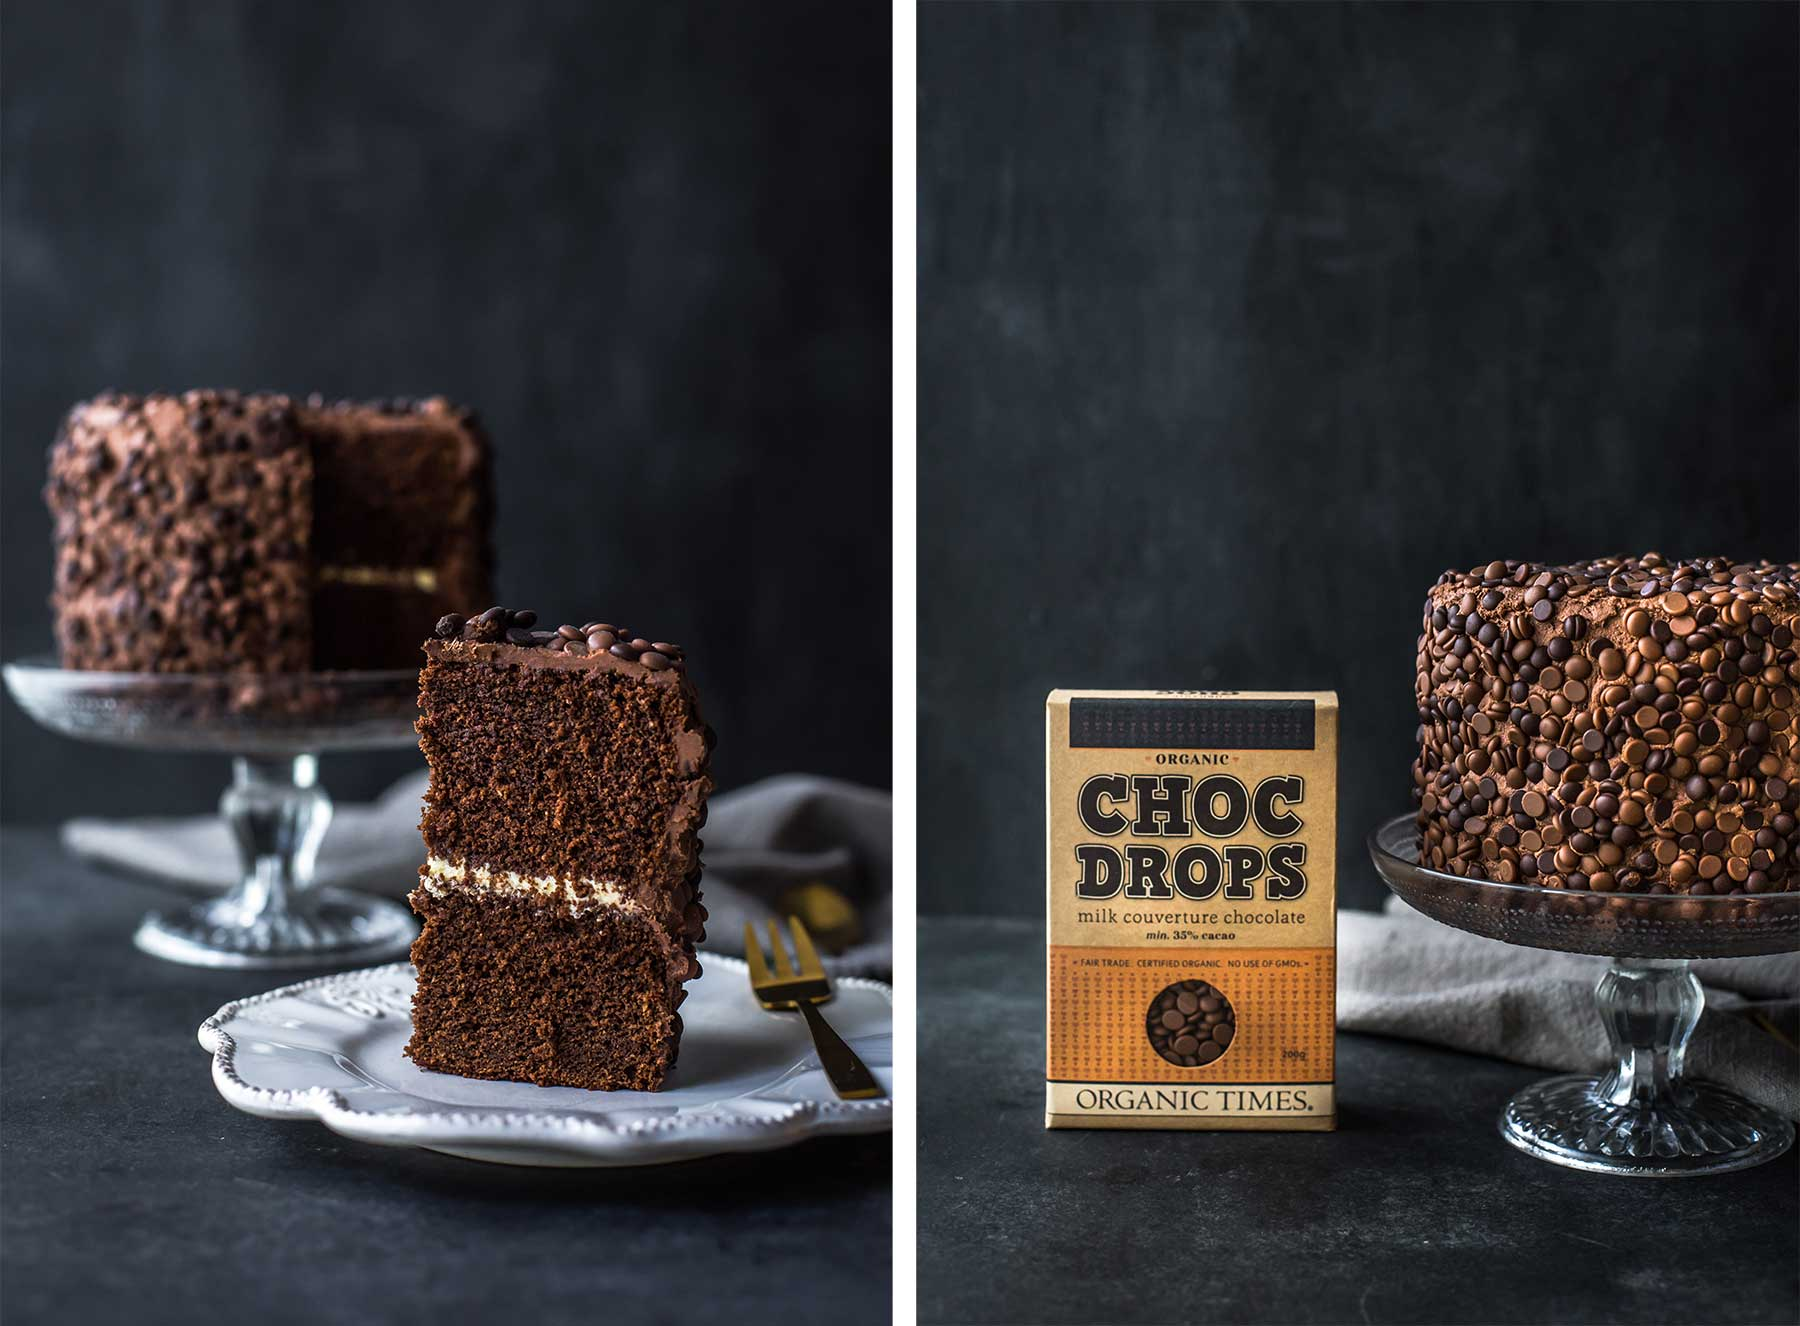 A slice of and a whole chocolate cake next to a box of Organic Times milk chocolate drops